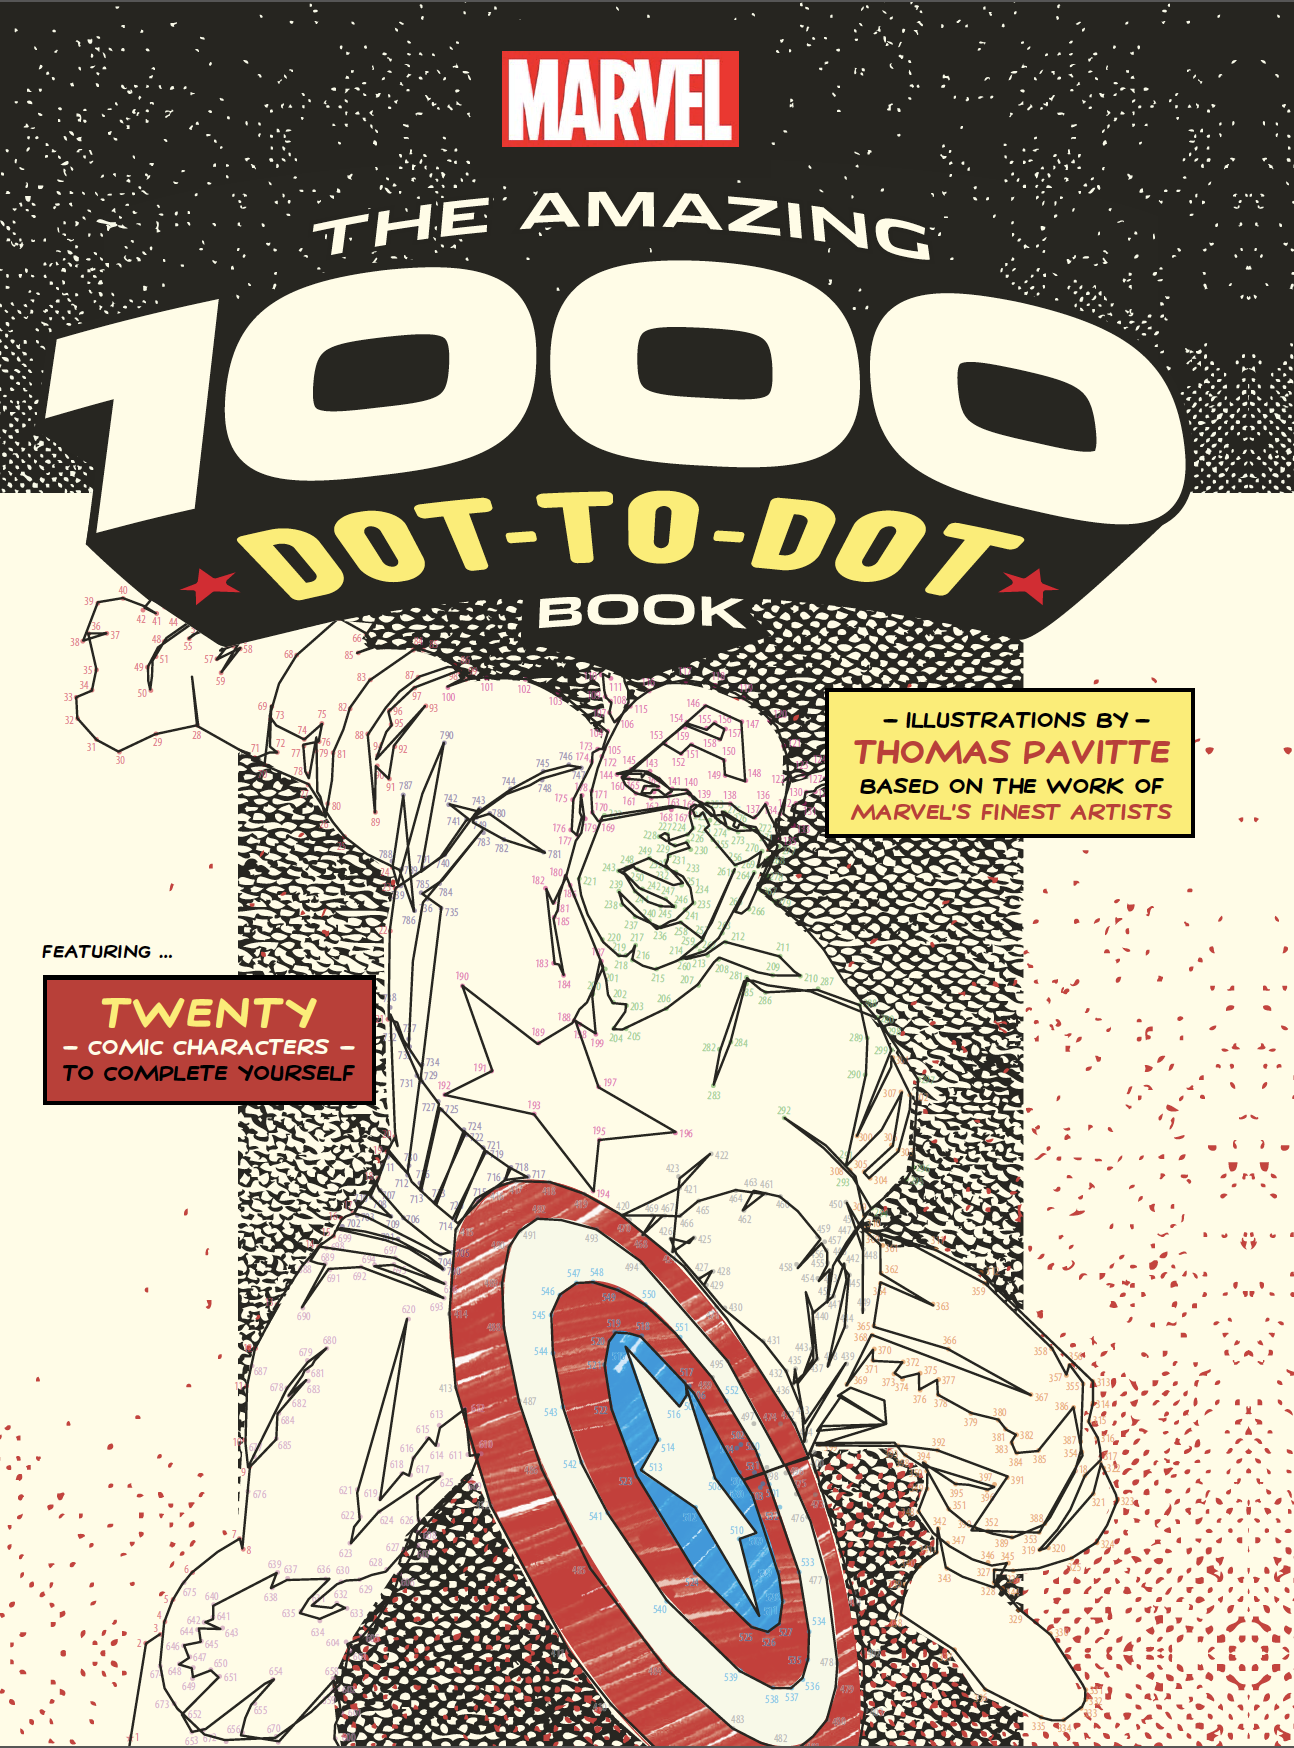 move over coloring books marvel introduces connect the dots